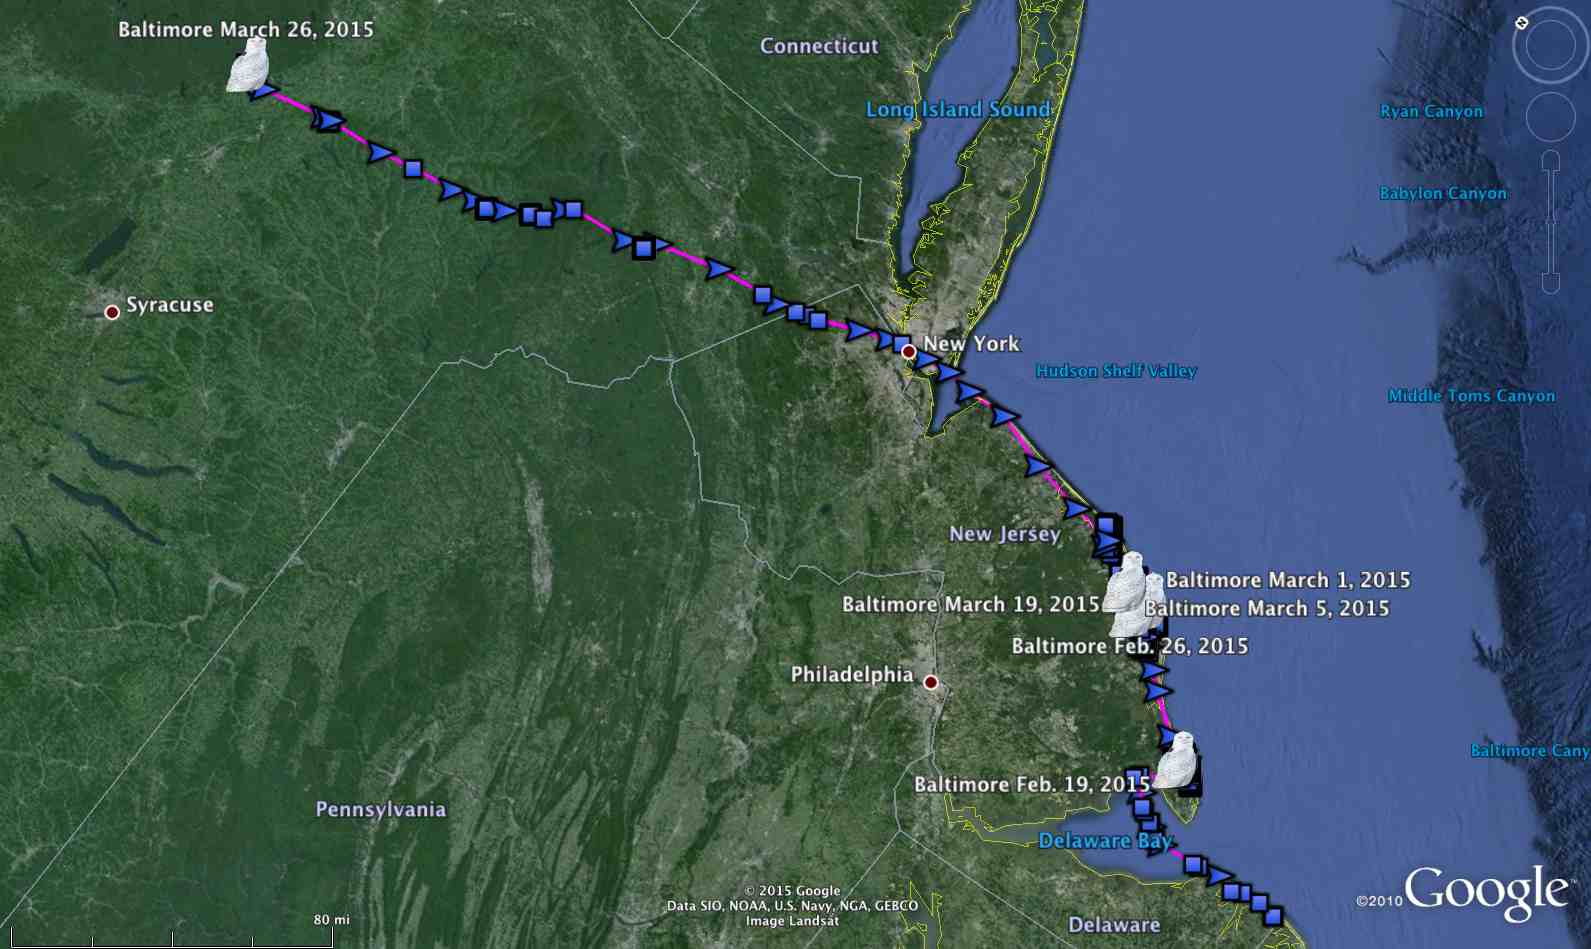 Baltimore's movements since being relocated to Assateague Island in February -- including his more than 300-mile flight north last week. (©Project SNOWstorm and Google Earth)